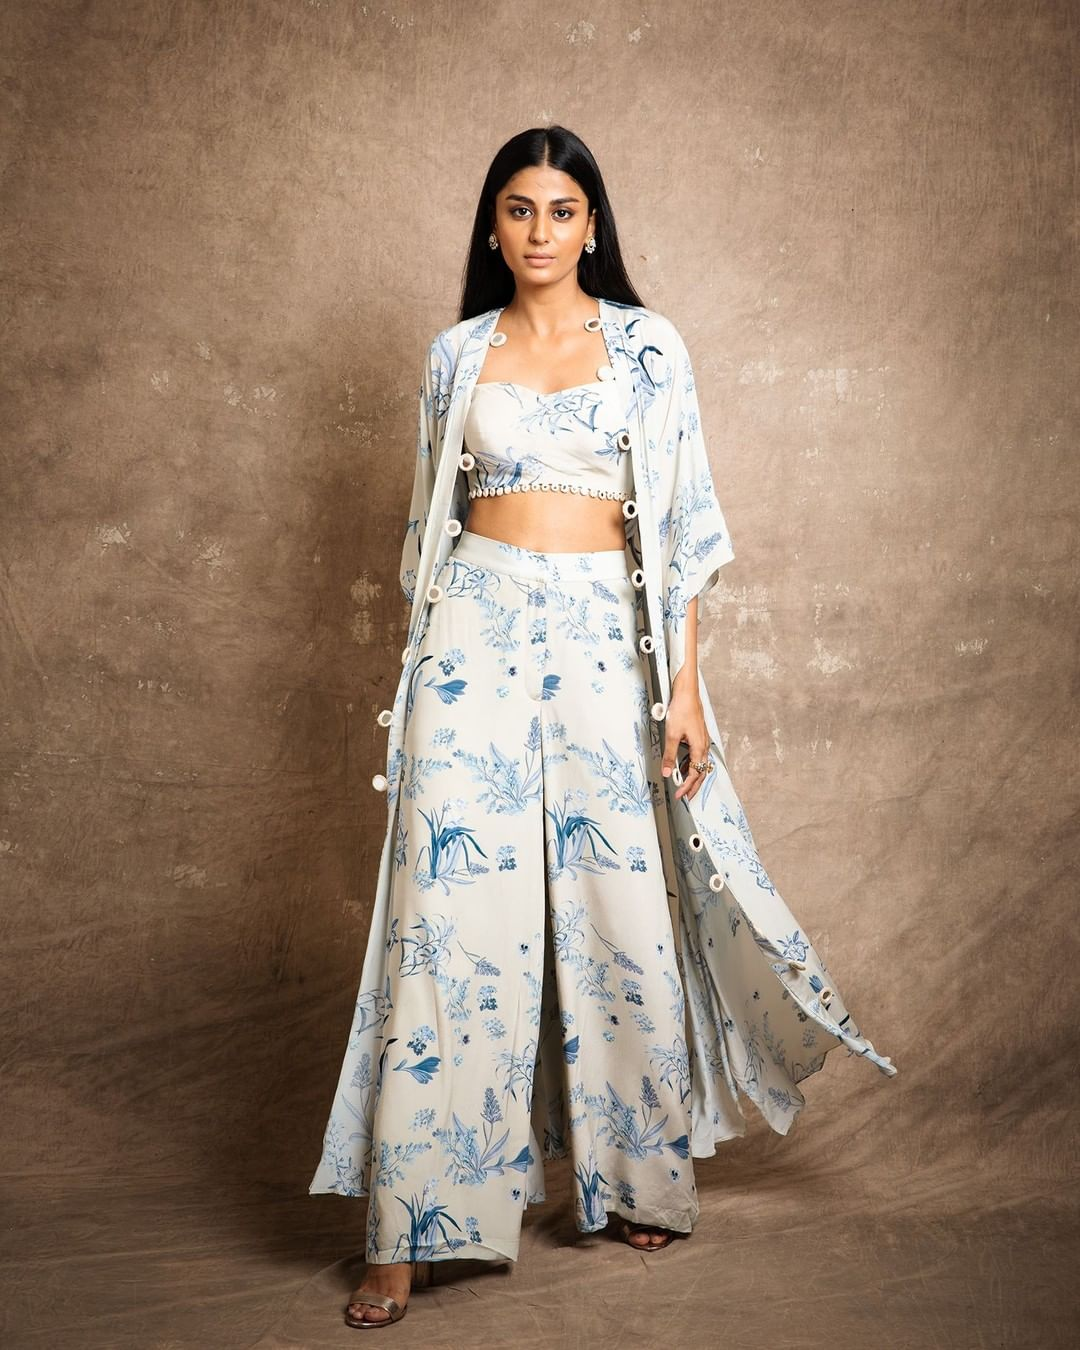 Inspired by the calmness and spirit of blue sea  enjoy a breezy affair in Seashore floral print pant blouse and cape set with mirror detailing.  For further enquiries please connect with  team on +91 7506633202 via call or WhatsApp. 2021-08-05